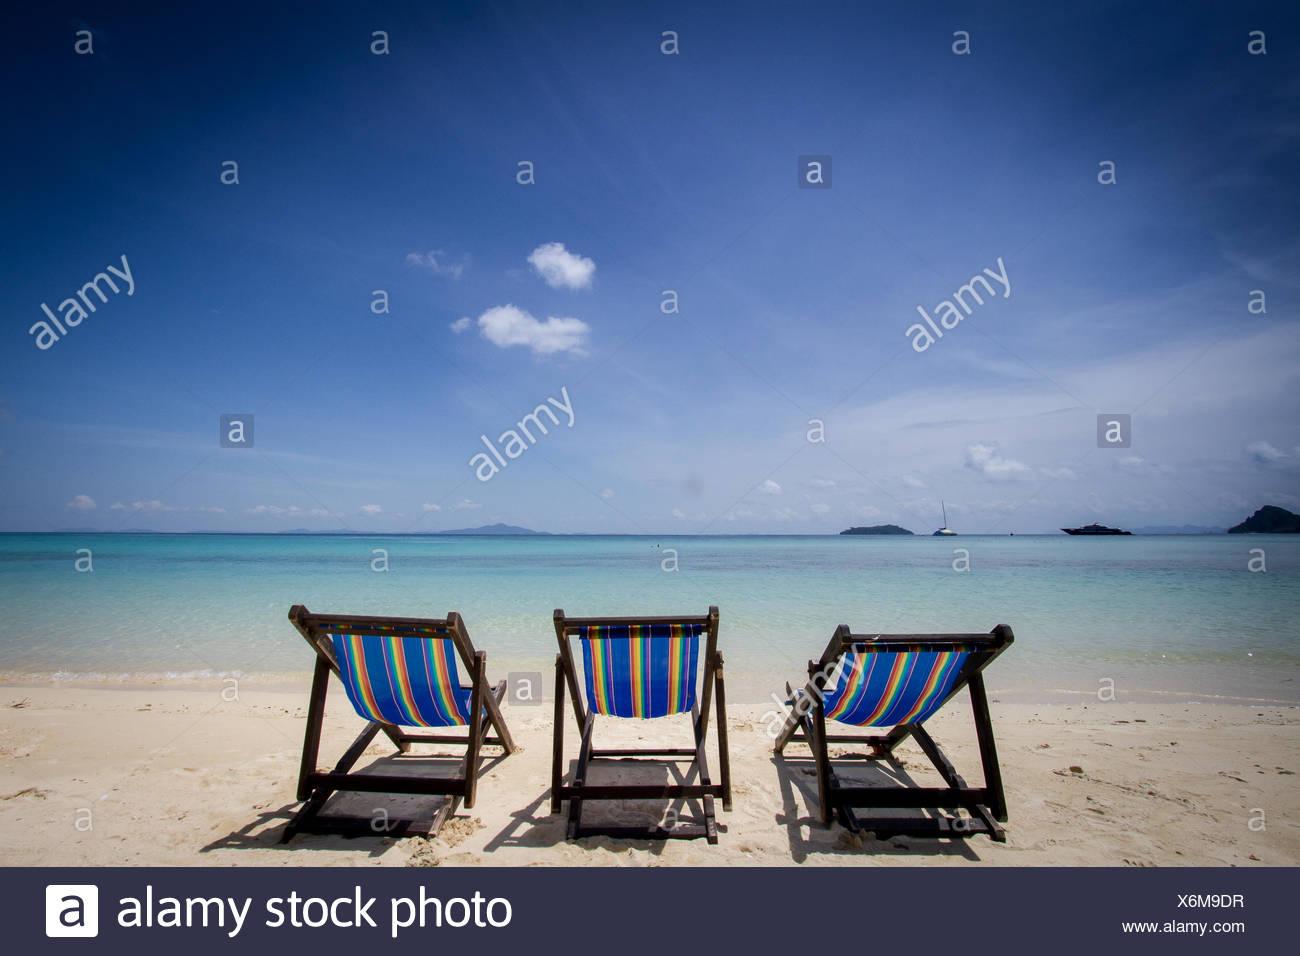 Thailand, Phuket, View of sun loungers on beach - Stock Image